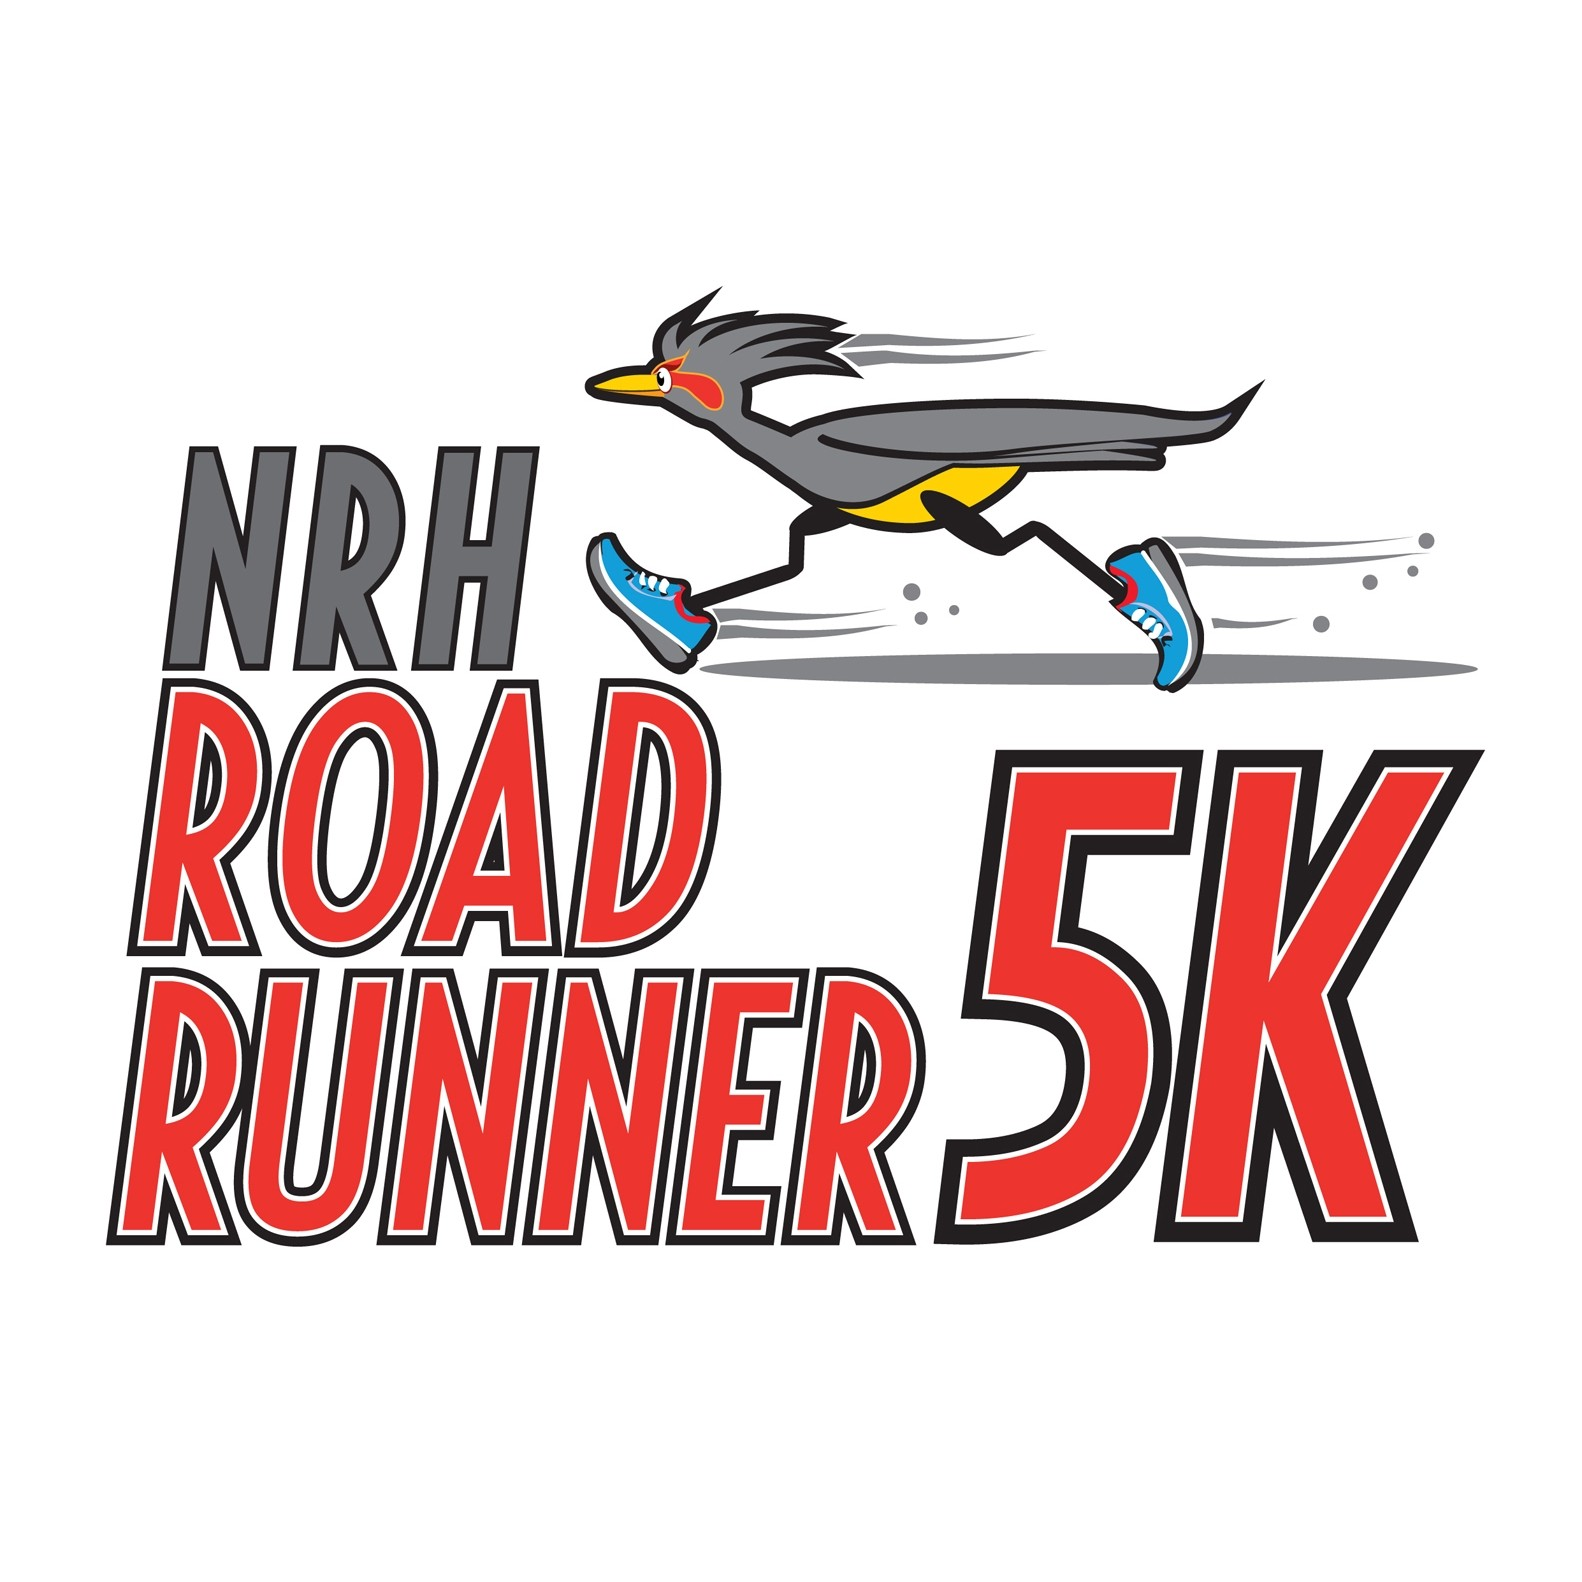 NHR Road Runner 5K